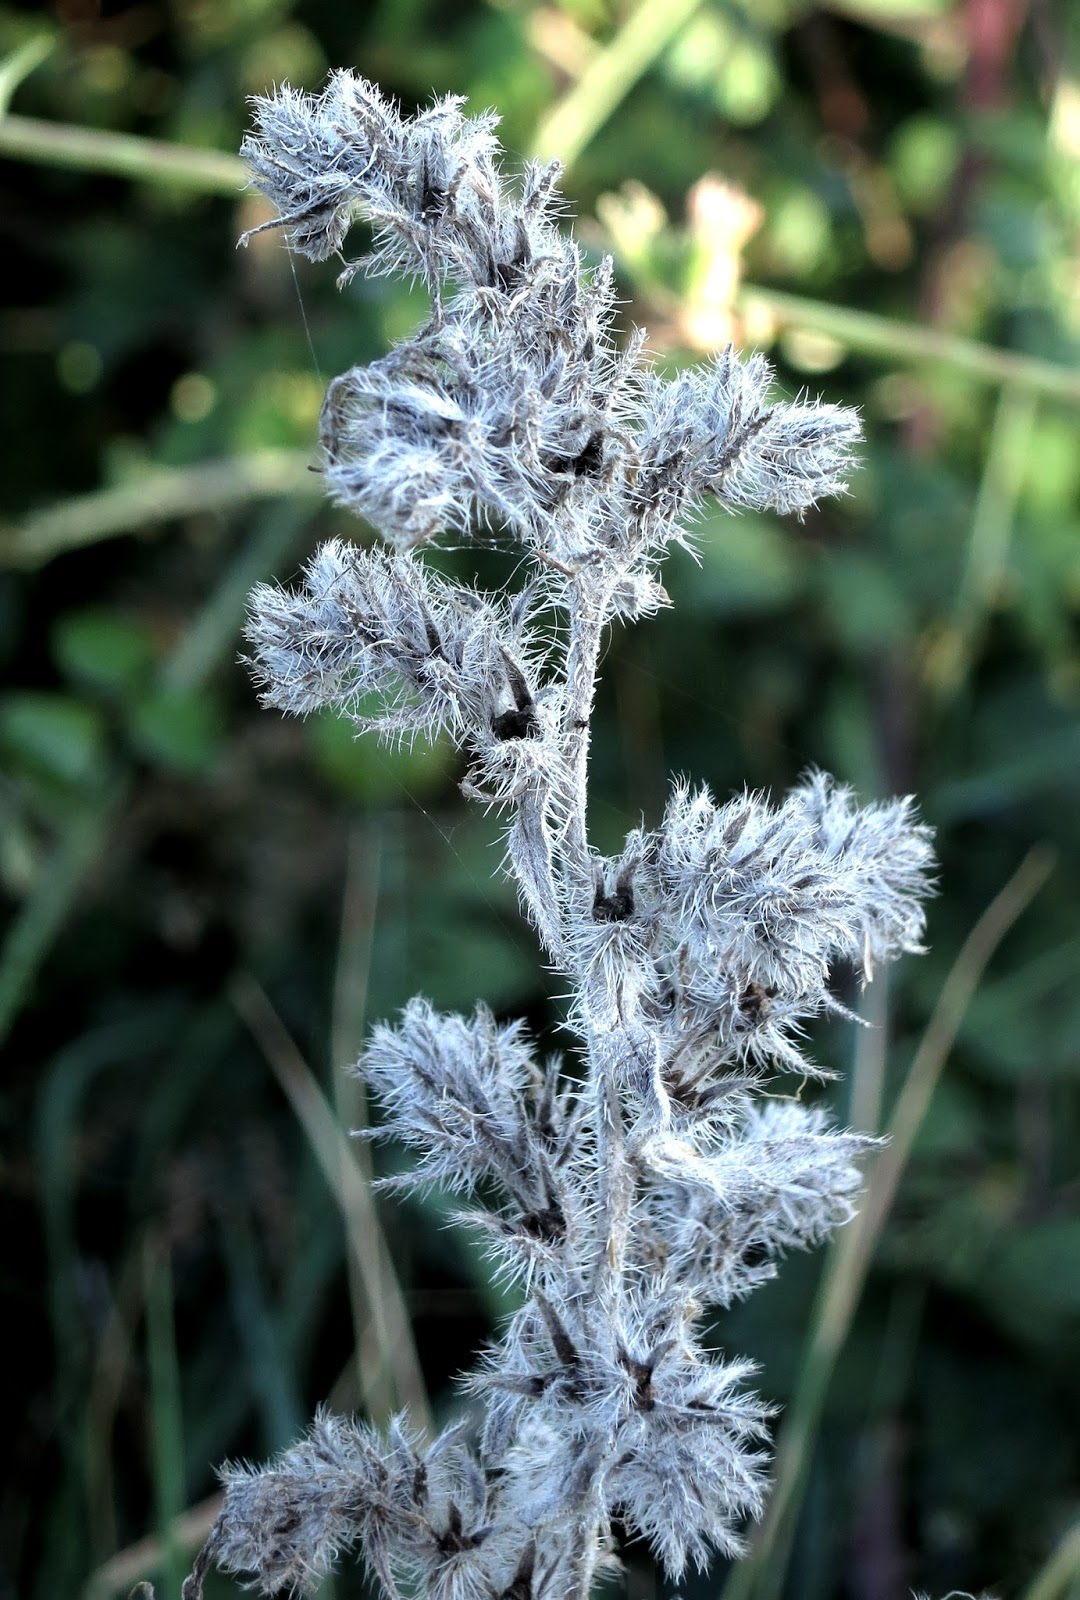 Viper's Bugloss showing how it looks like frost in autumn